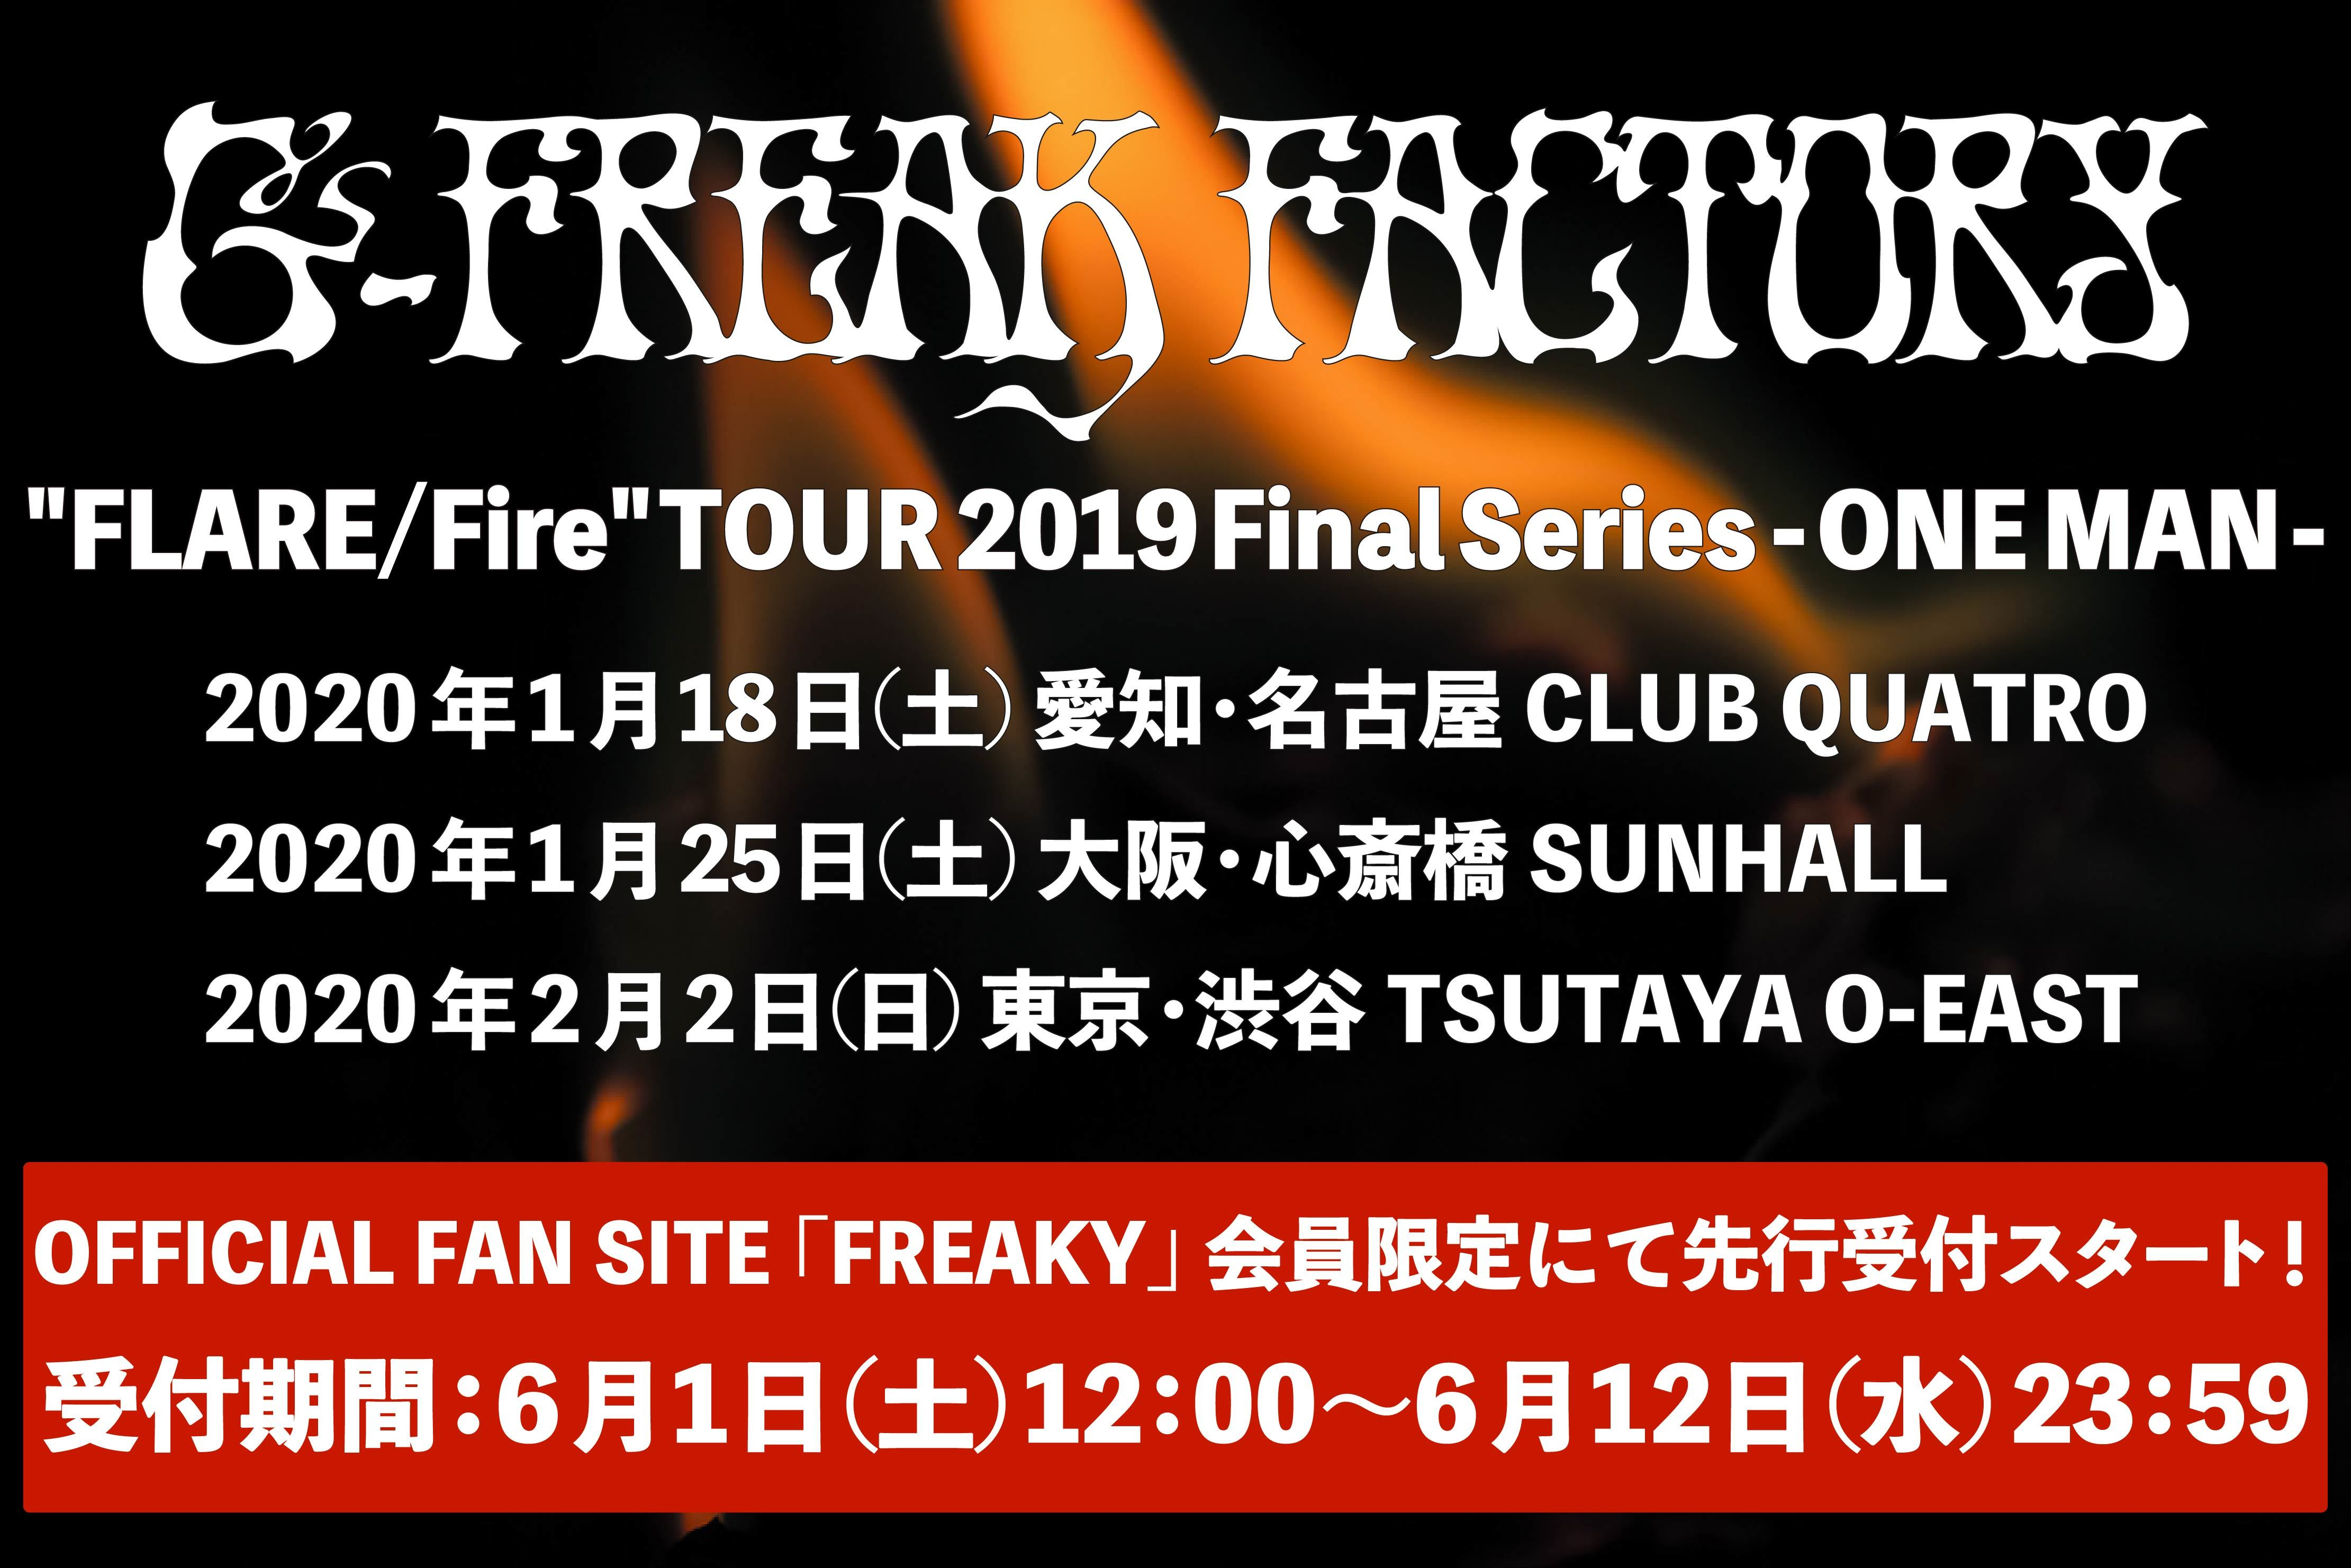 "「G-FREAK FACTORY ""FLARE/Fire"" TOUR 2019 Final Series -ONE MAN-」<br />本日、6/1(土)昼12:00よりOFFICIAL FAN SITE「FREAKY」にて先行受付開始!"